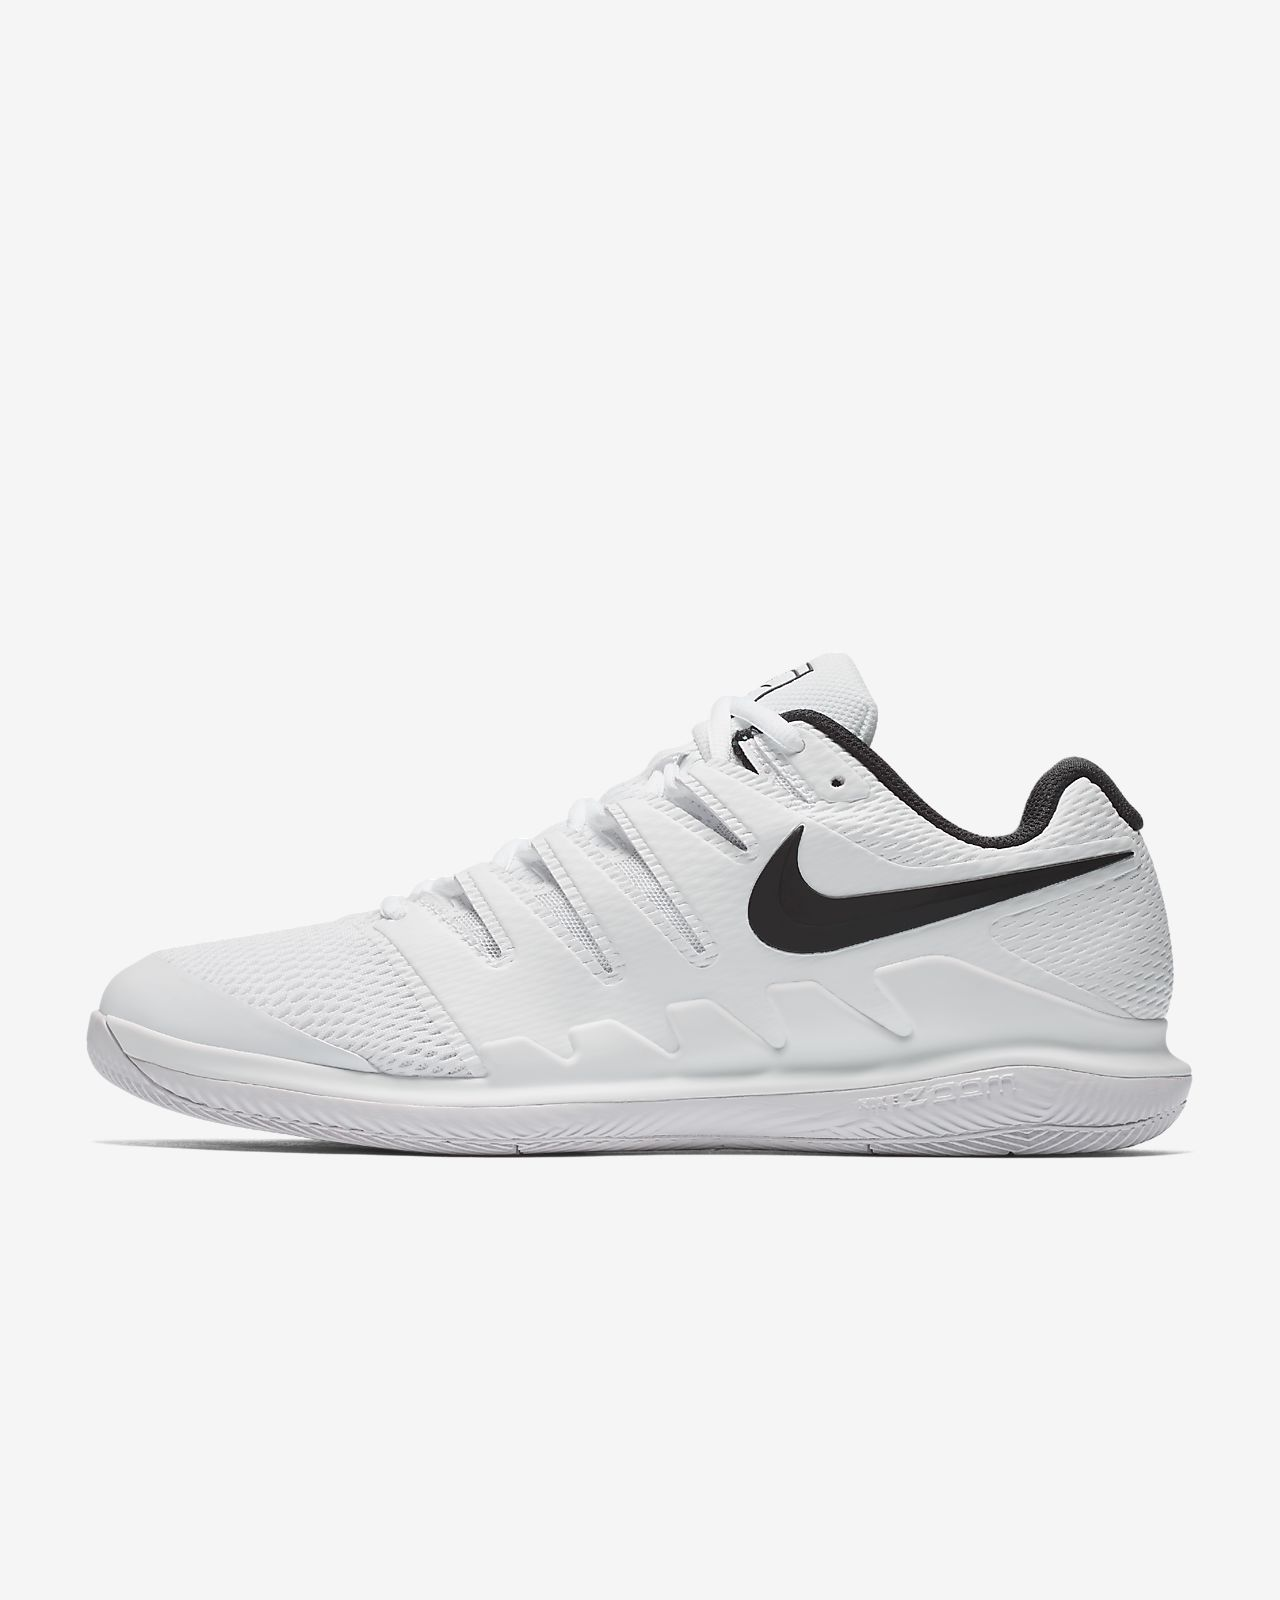 best cheap e9f5f 6cdb7 Mens Hard Court Tennis Shoe. Nike Air Zoom Vapor X HC